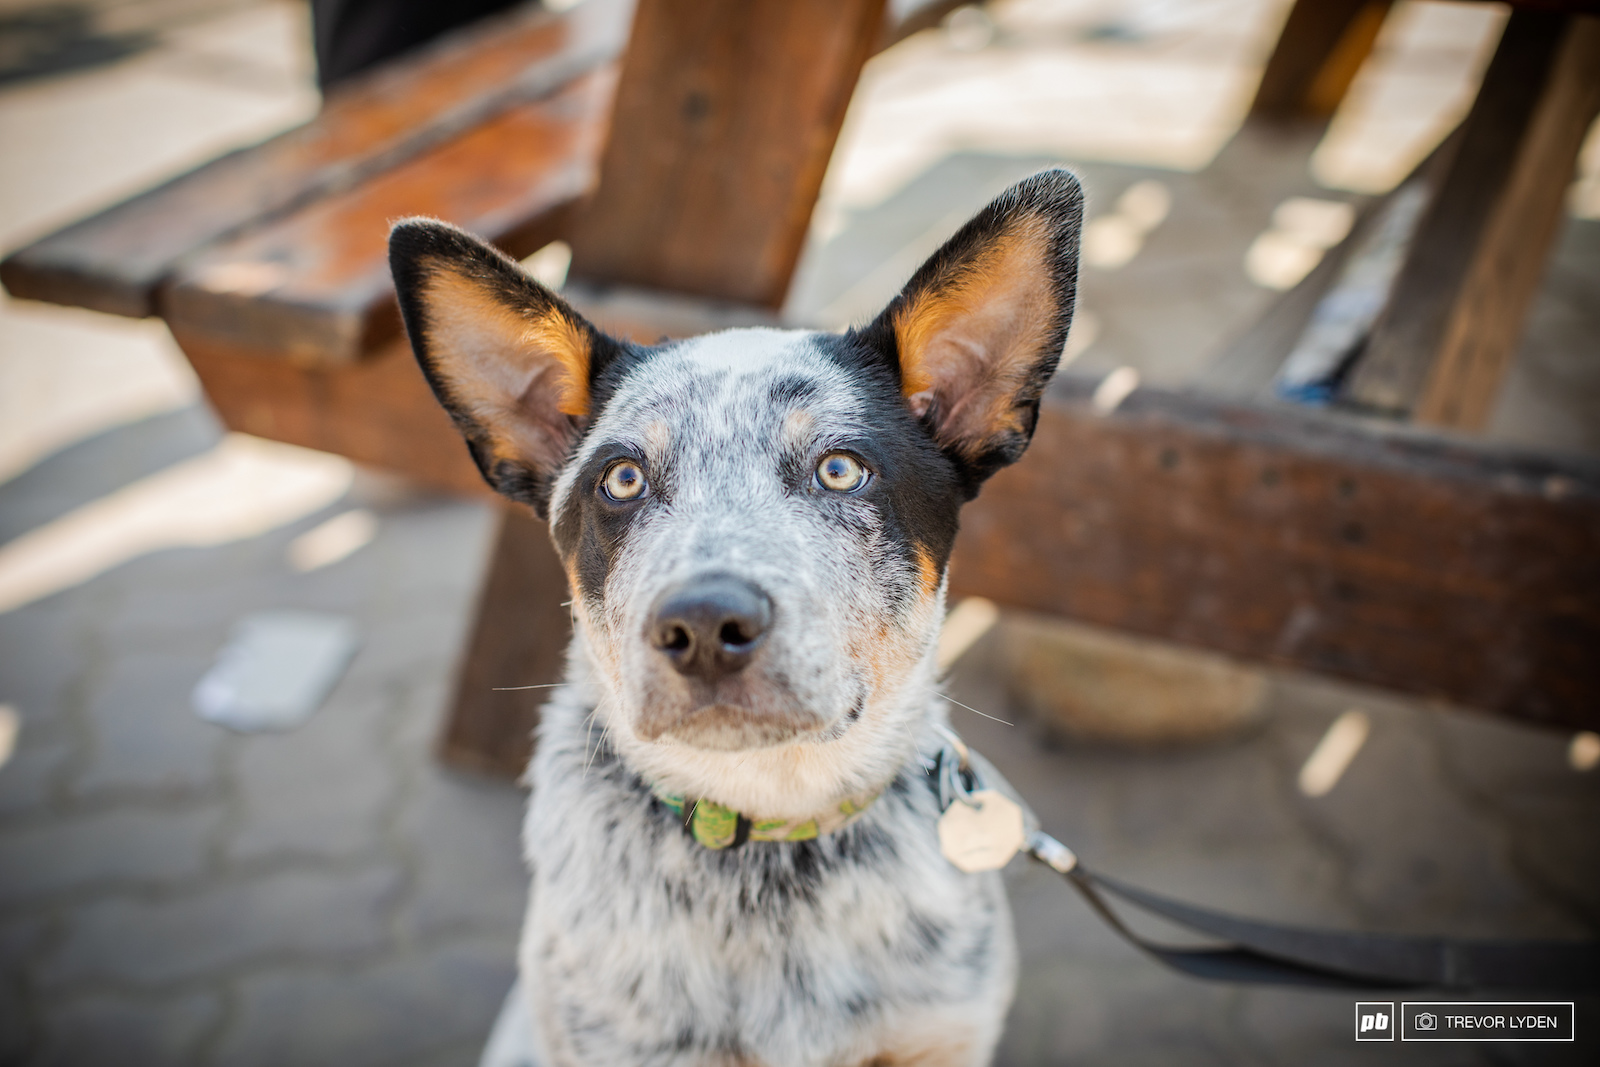 Name Ender Breed Australian Cattle Dog Age 3 months Hometown Boulder City Nevada Fun Fact Ender is no stranger to mountain biking and watching big freeride lines. She actually came from the old Rampage site